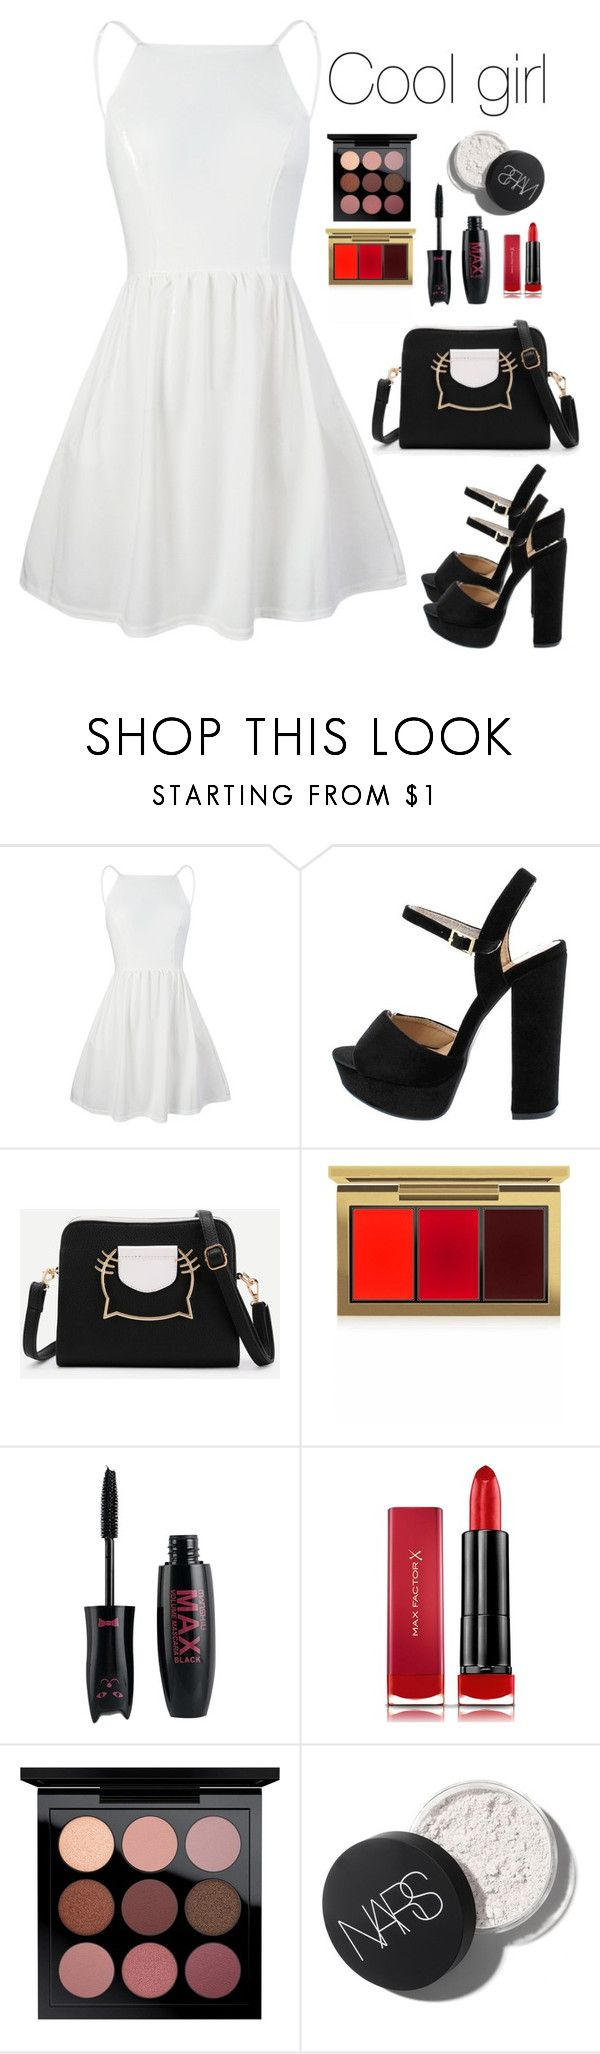 """Untitled #700"" by emily147147 ❤ liked on Polyvore featuring MAC Cosmetics and Max Factor #Accessoriesteenscasual"